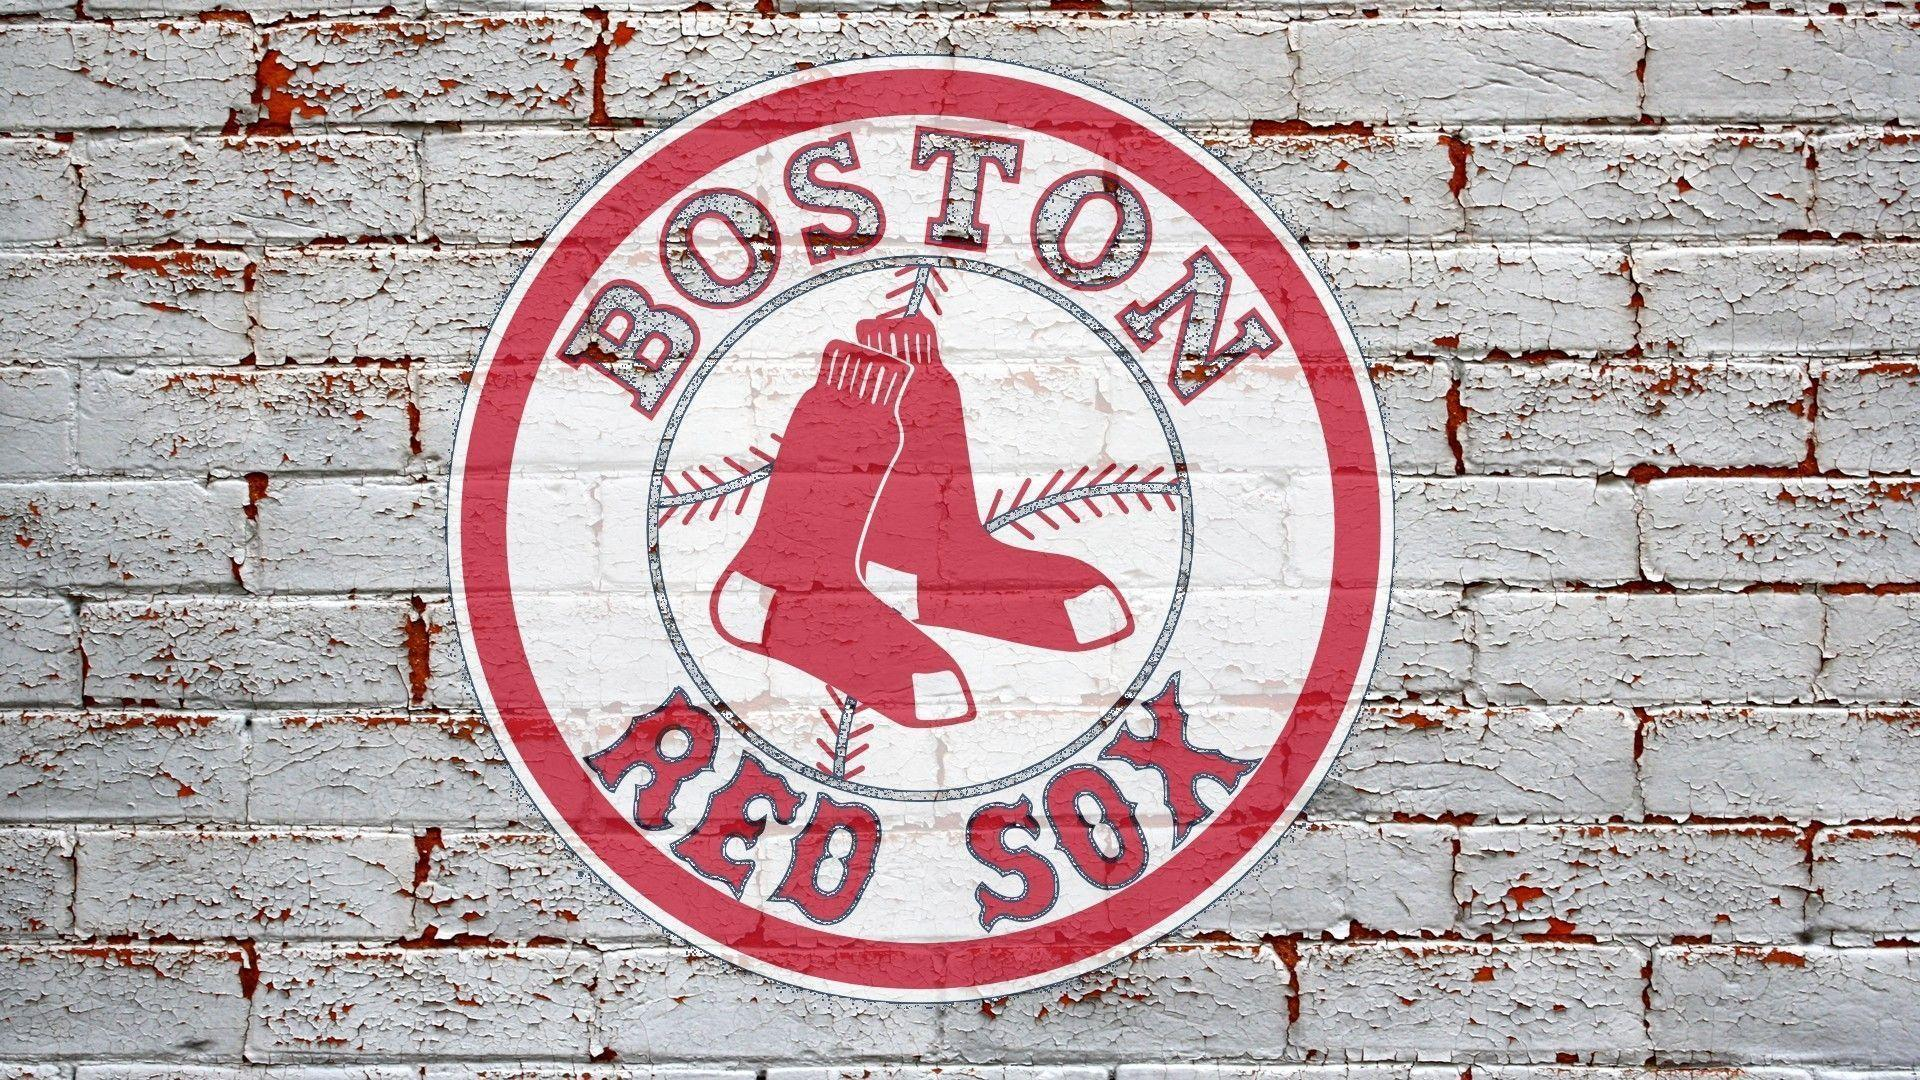 Red Sox Wallpapers - Wallpaper Cave